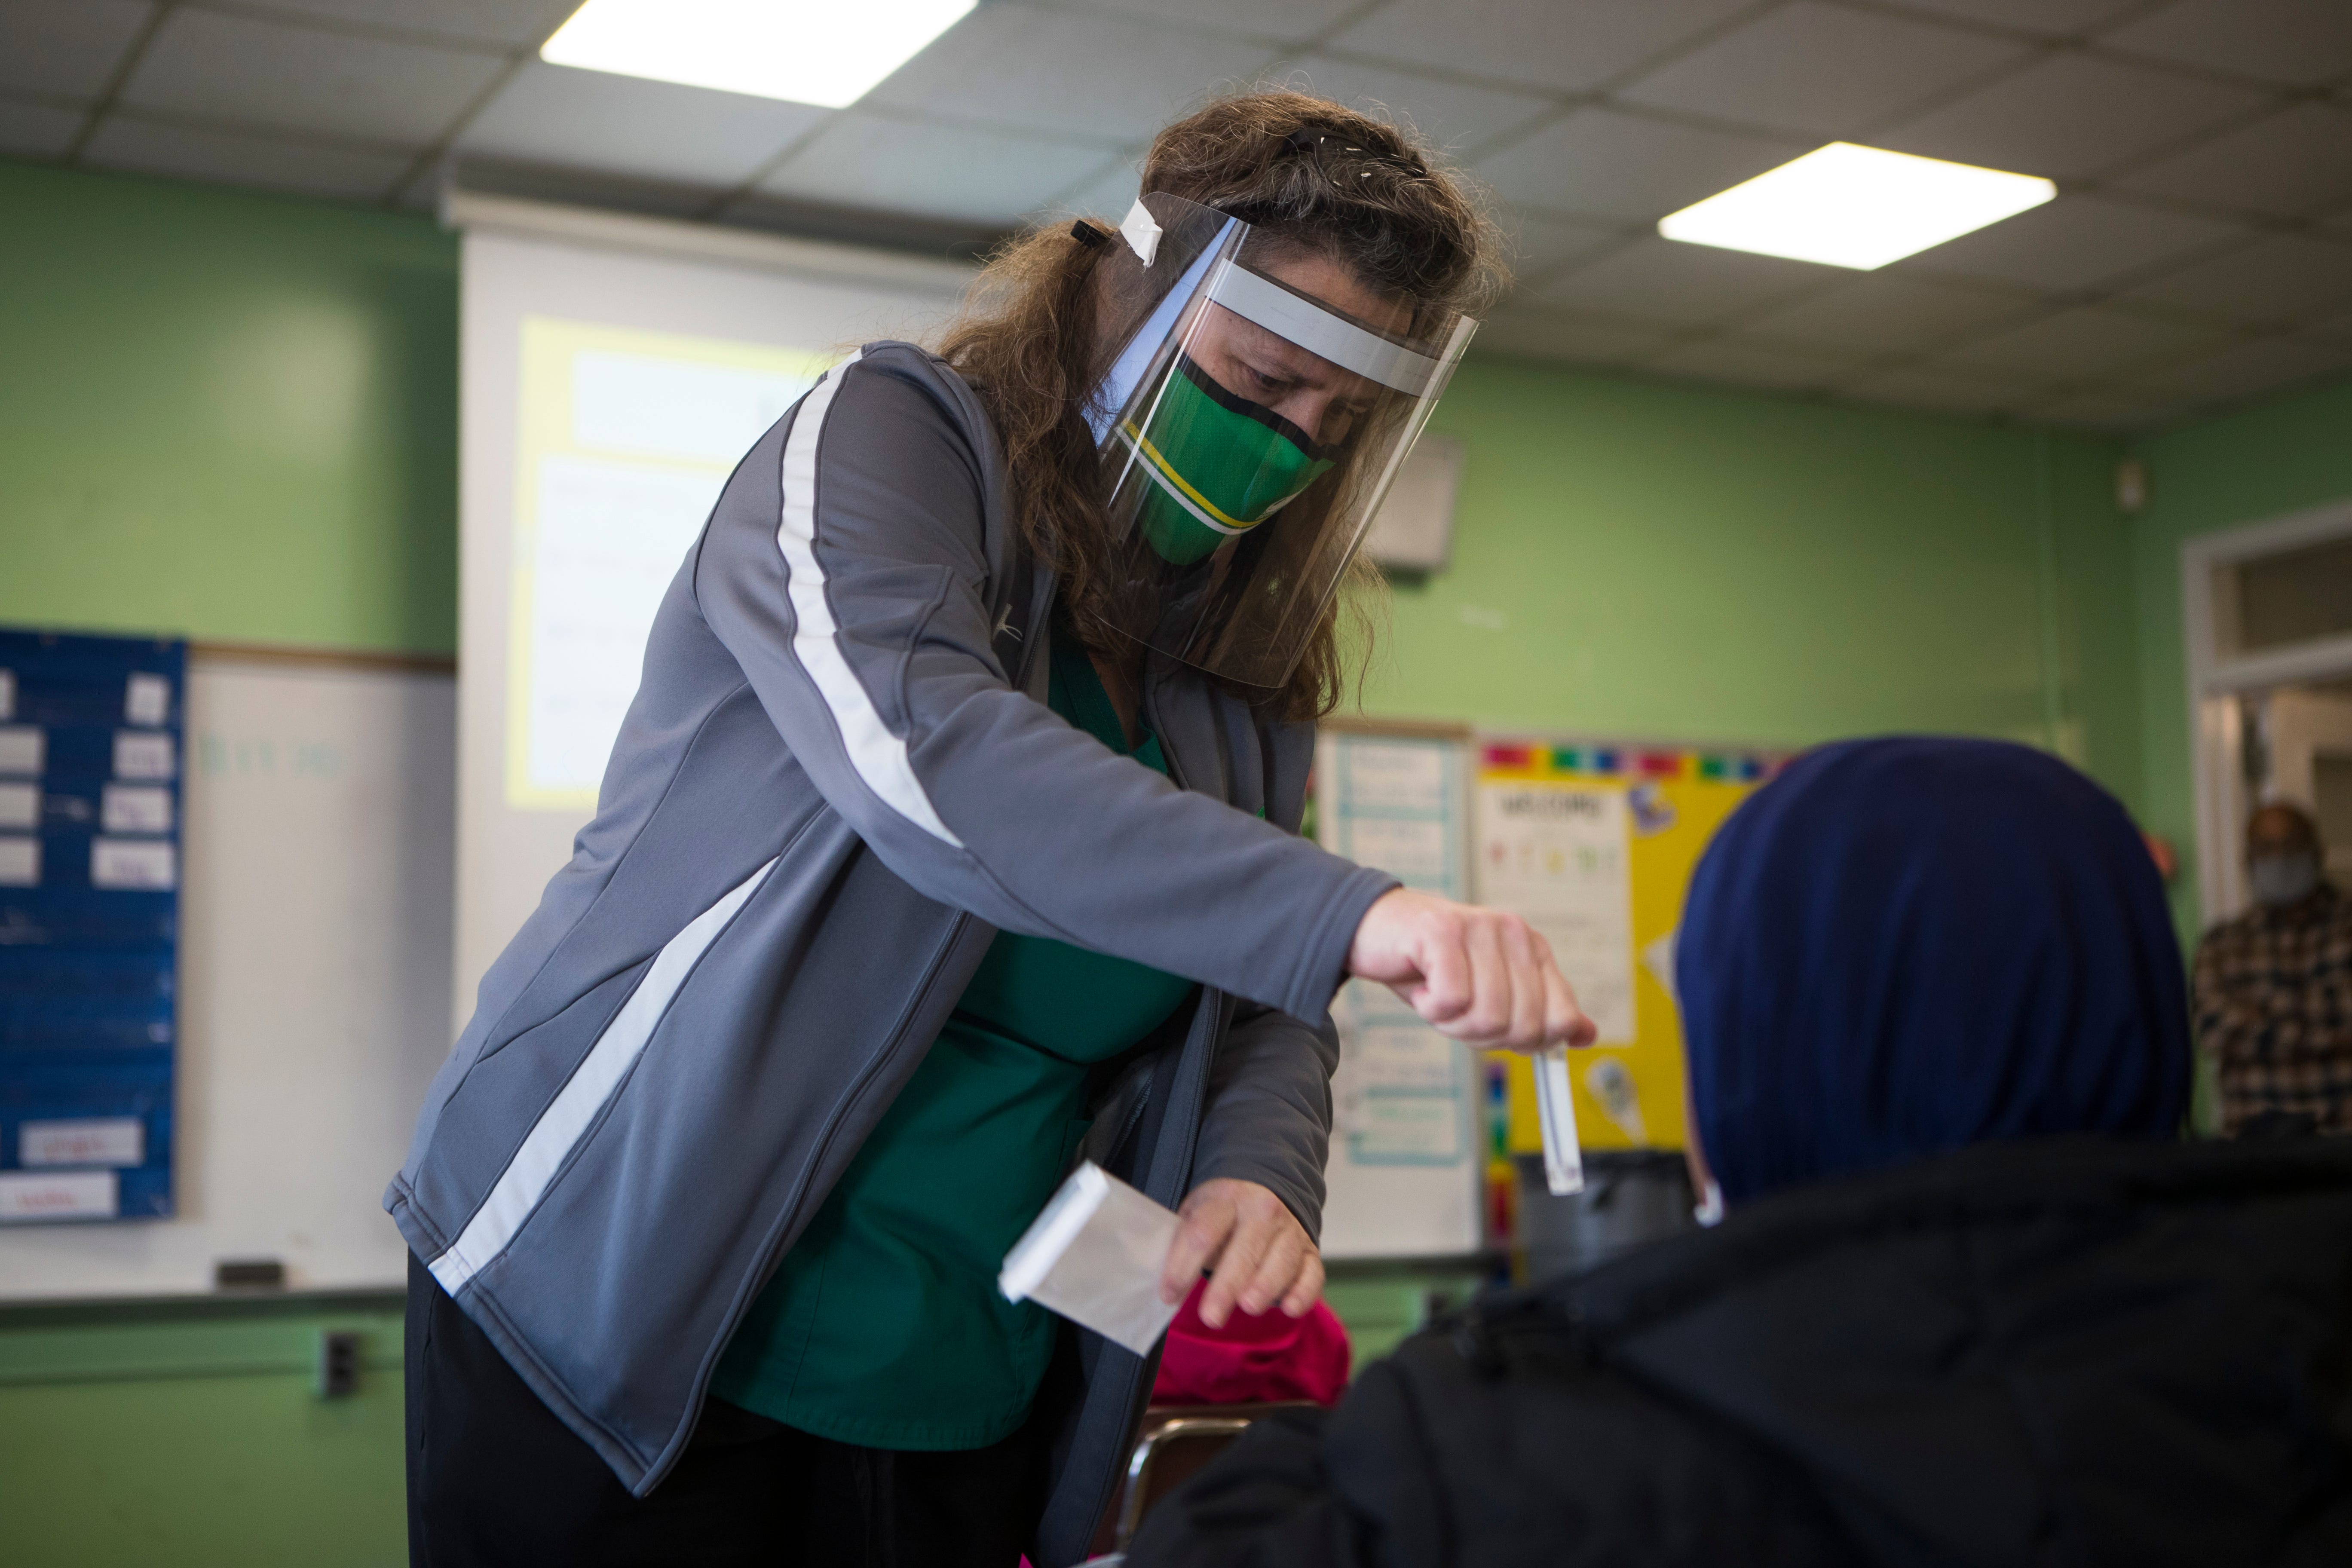 CDC changes recommendations for masks in school buildings, citing the delta variant